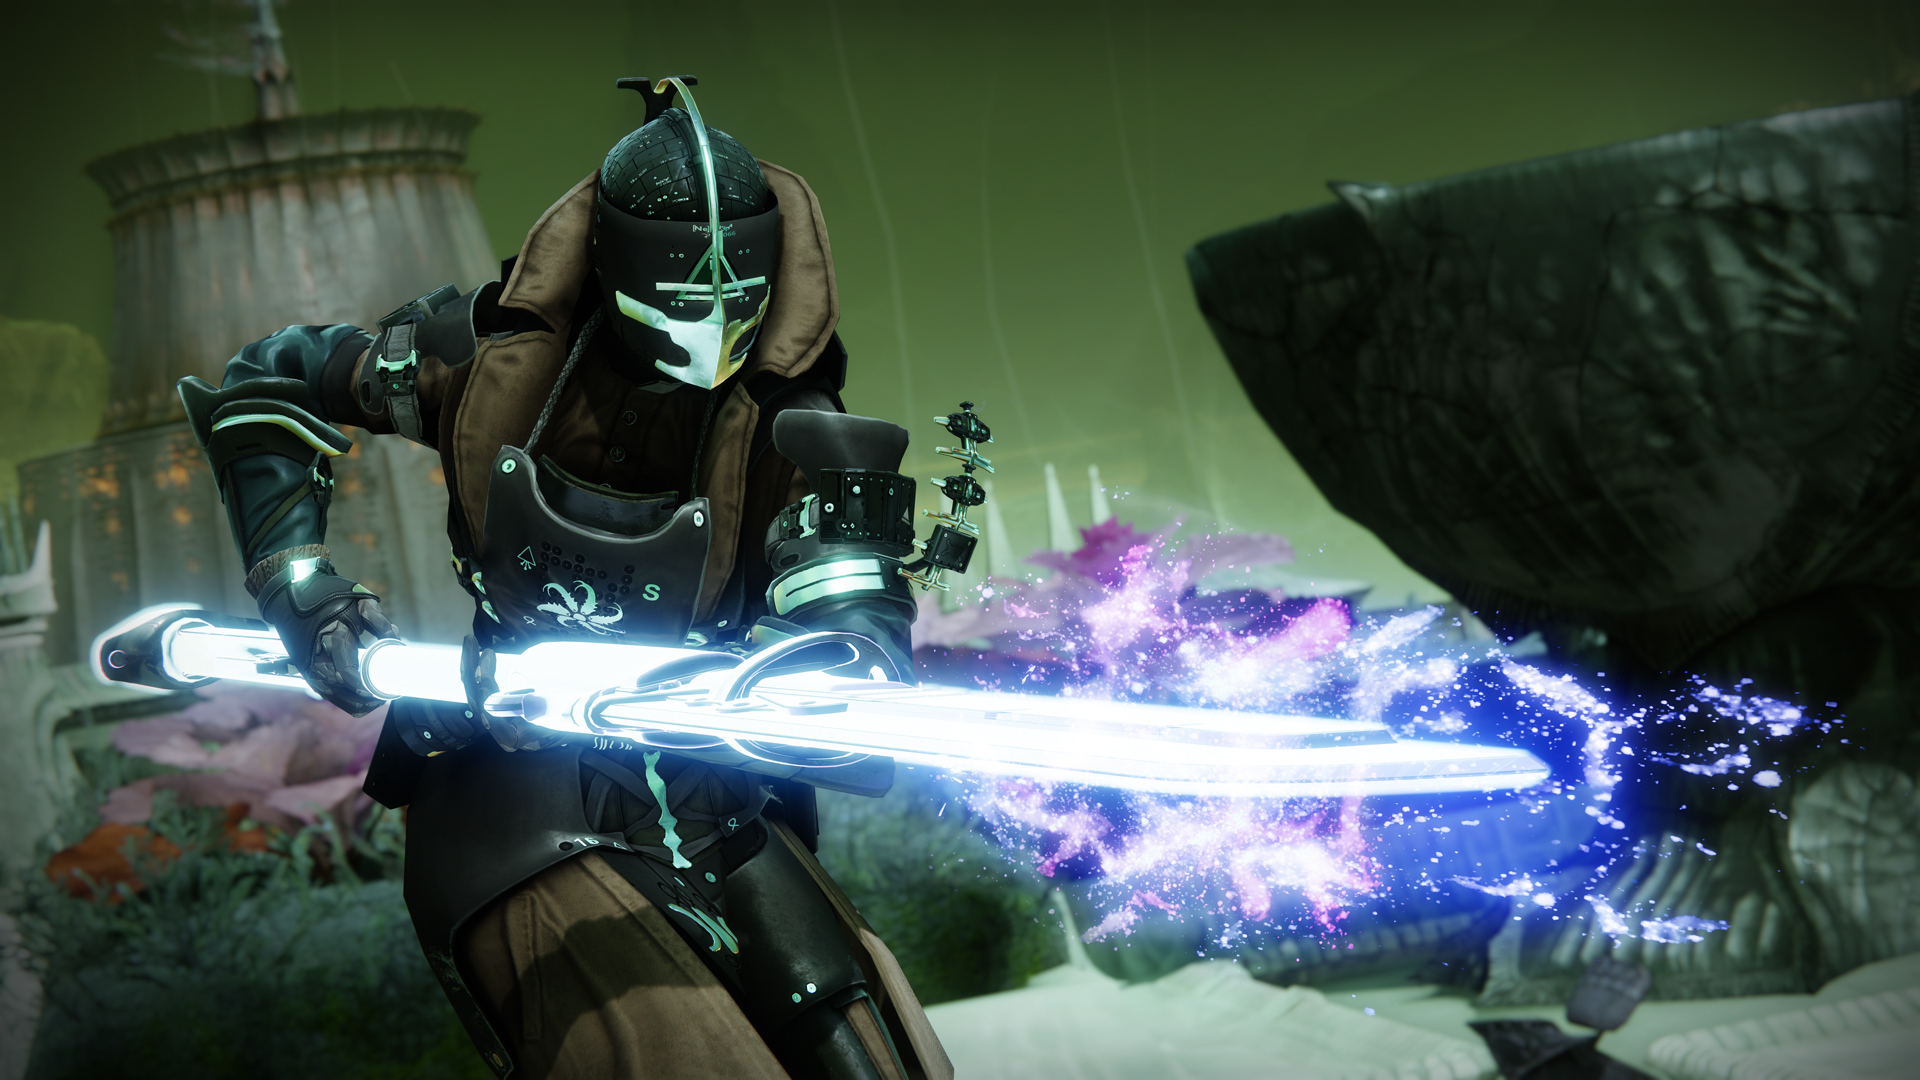 Destiny 2 screenshots from The Witch Queen expansion